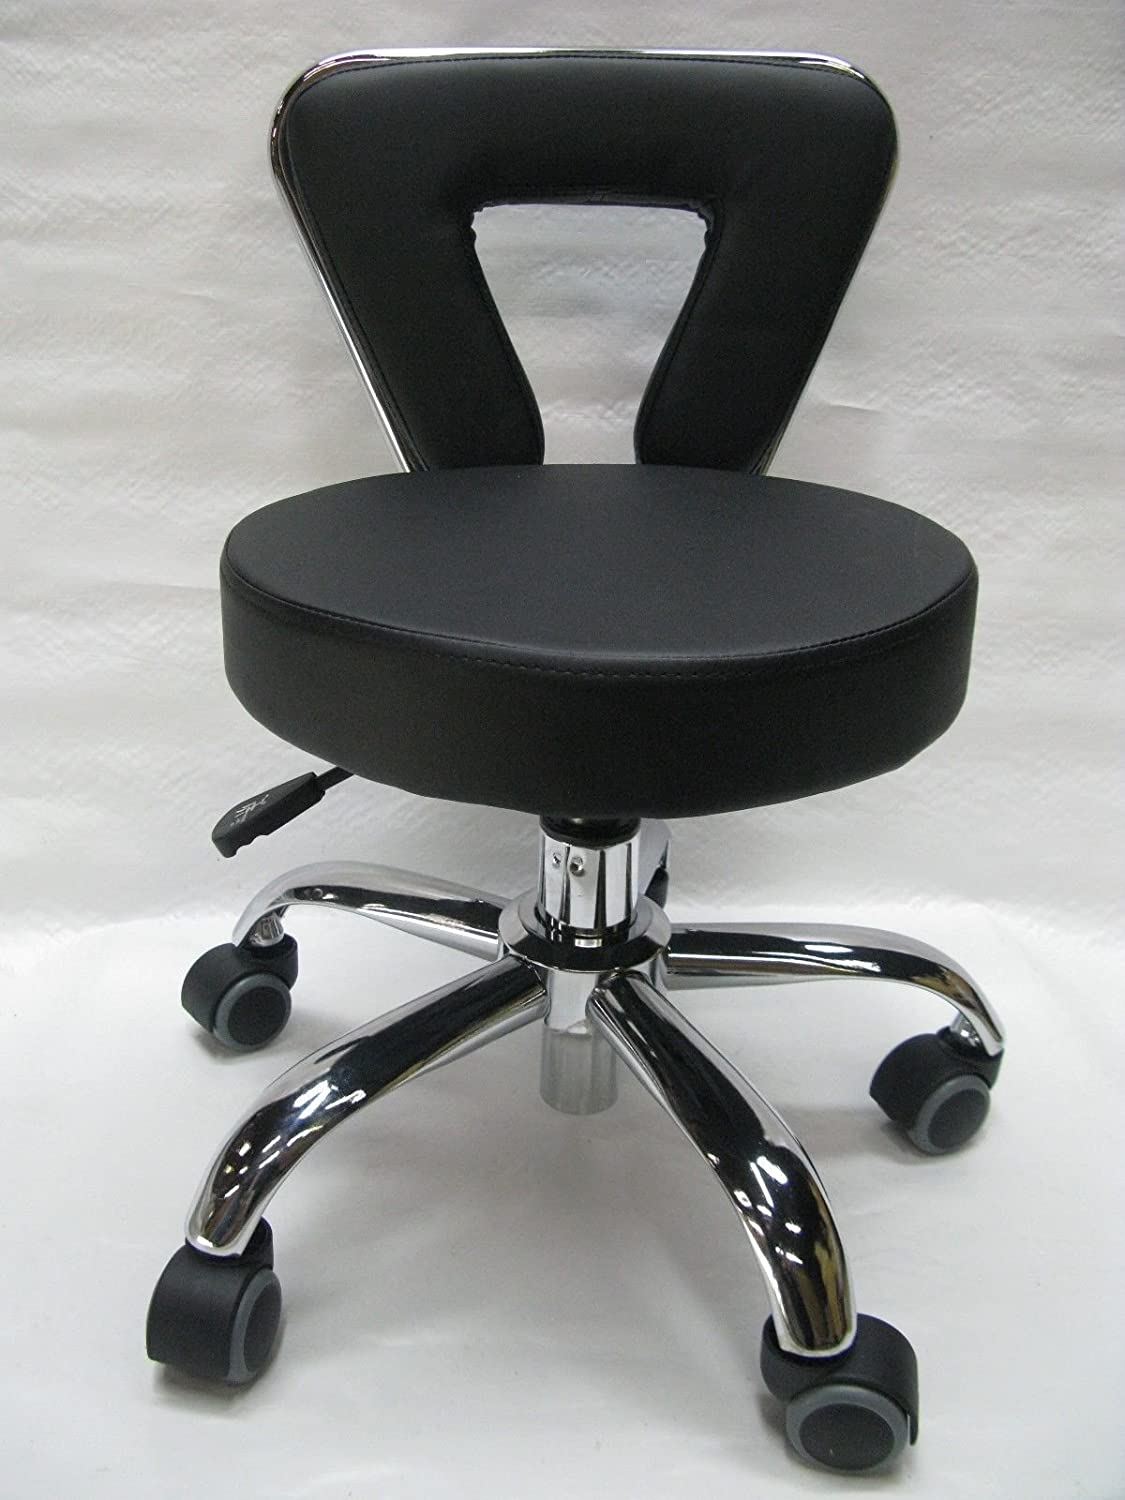 Amazon.com: Spa Chair Pedicure Stool for Nail, Hair, Facial ...